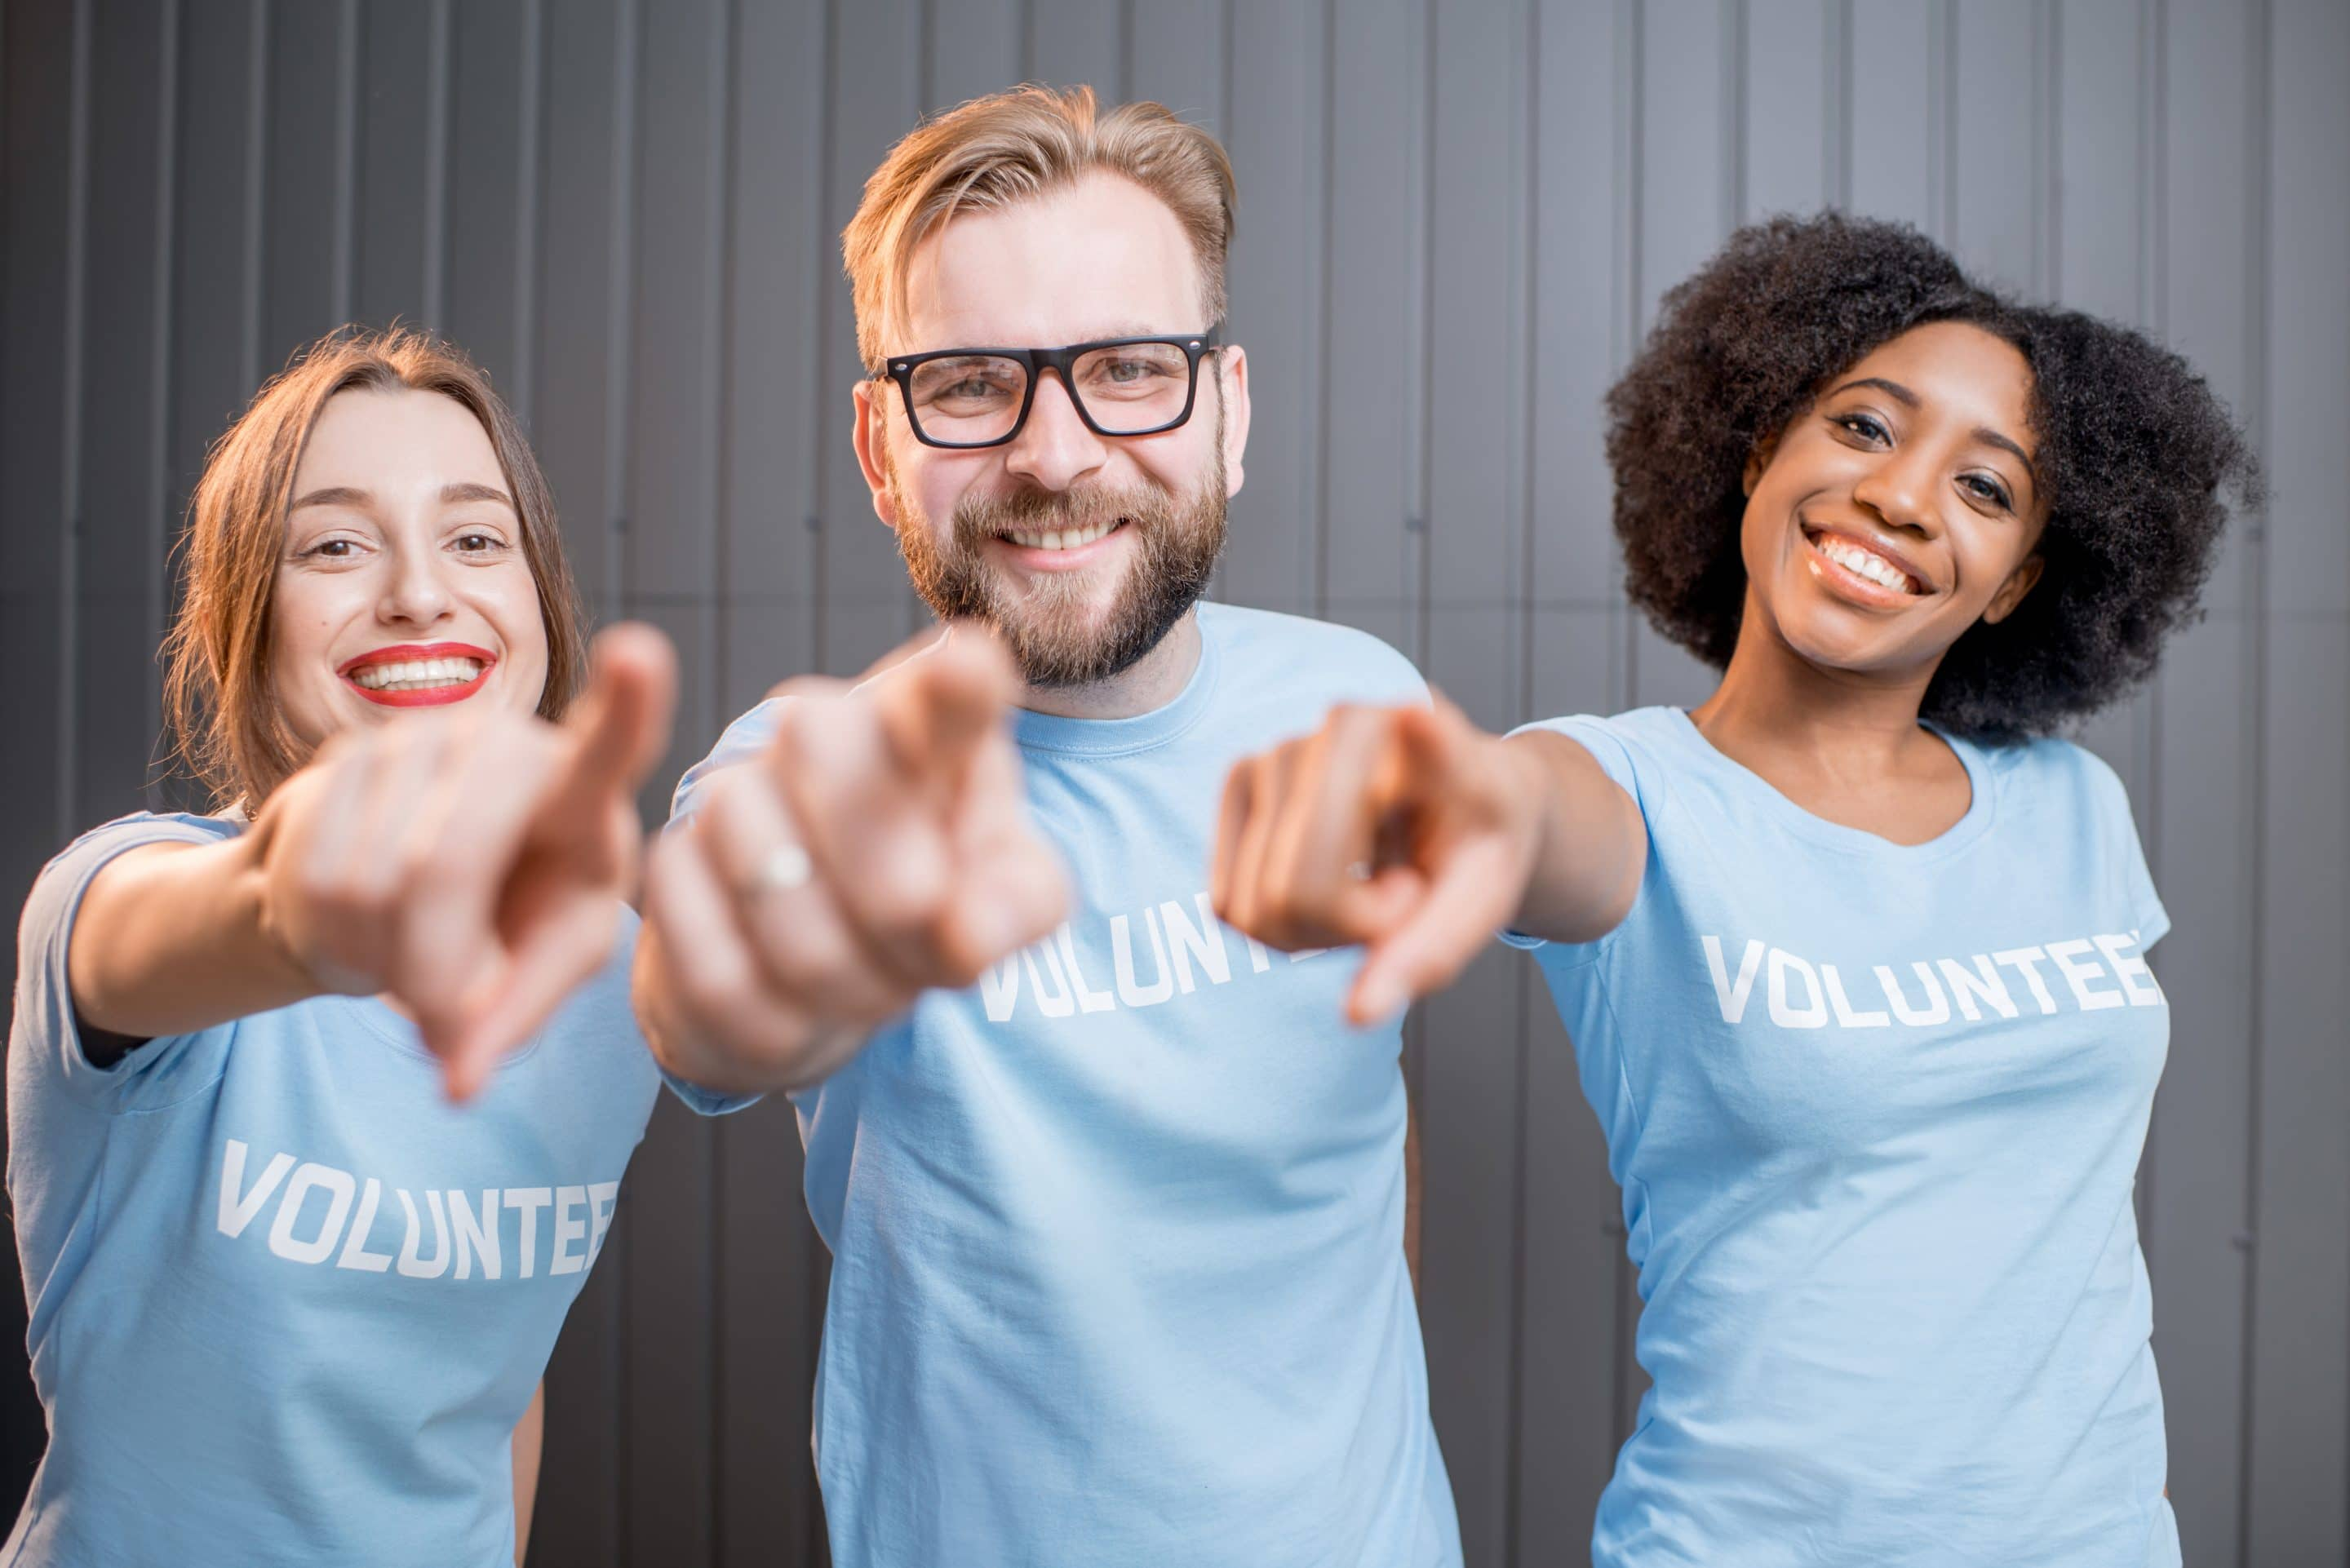 Volunteering Can Solve Business And Social Challenges